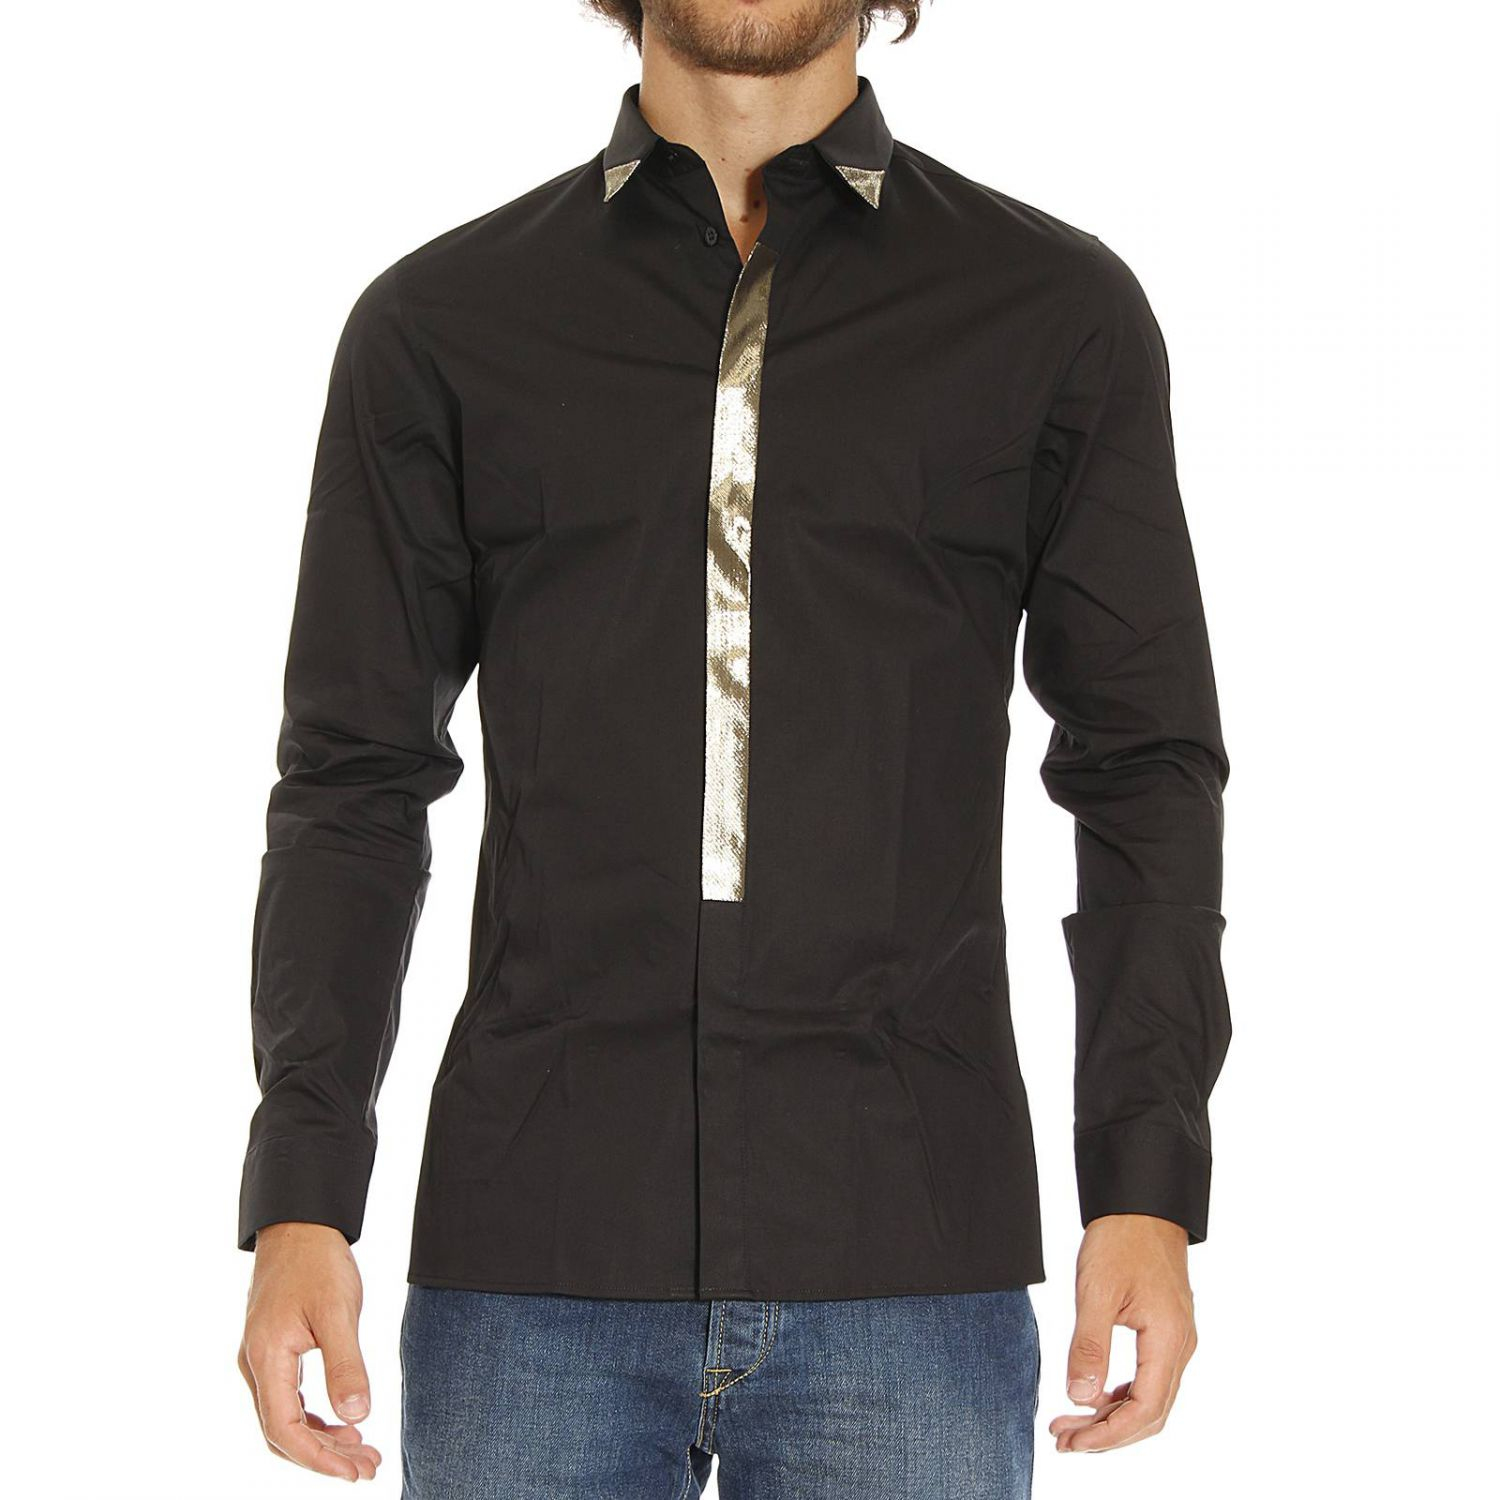 mens clothing shirts formal shirts etro shirts male